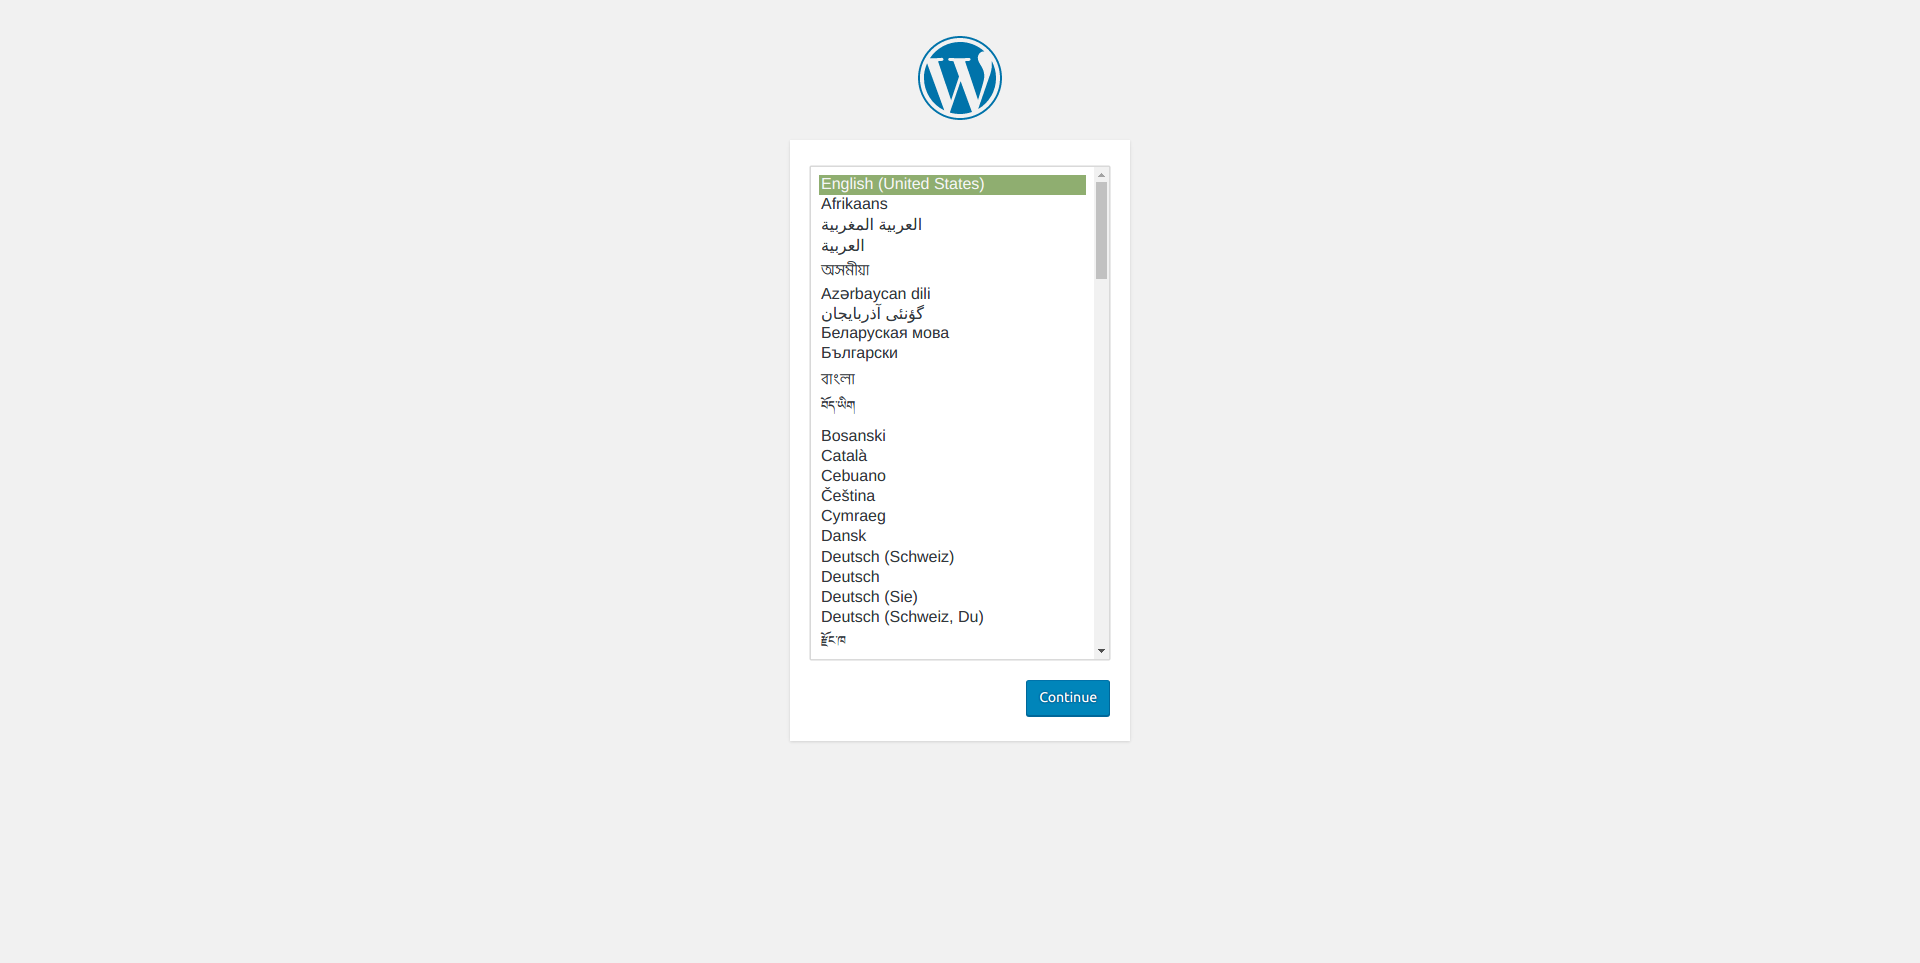 wordpress-success.png